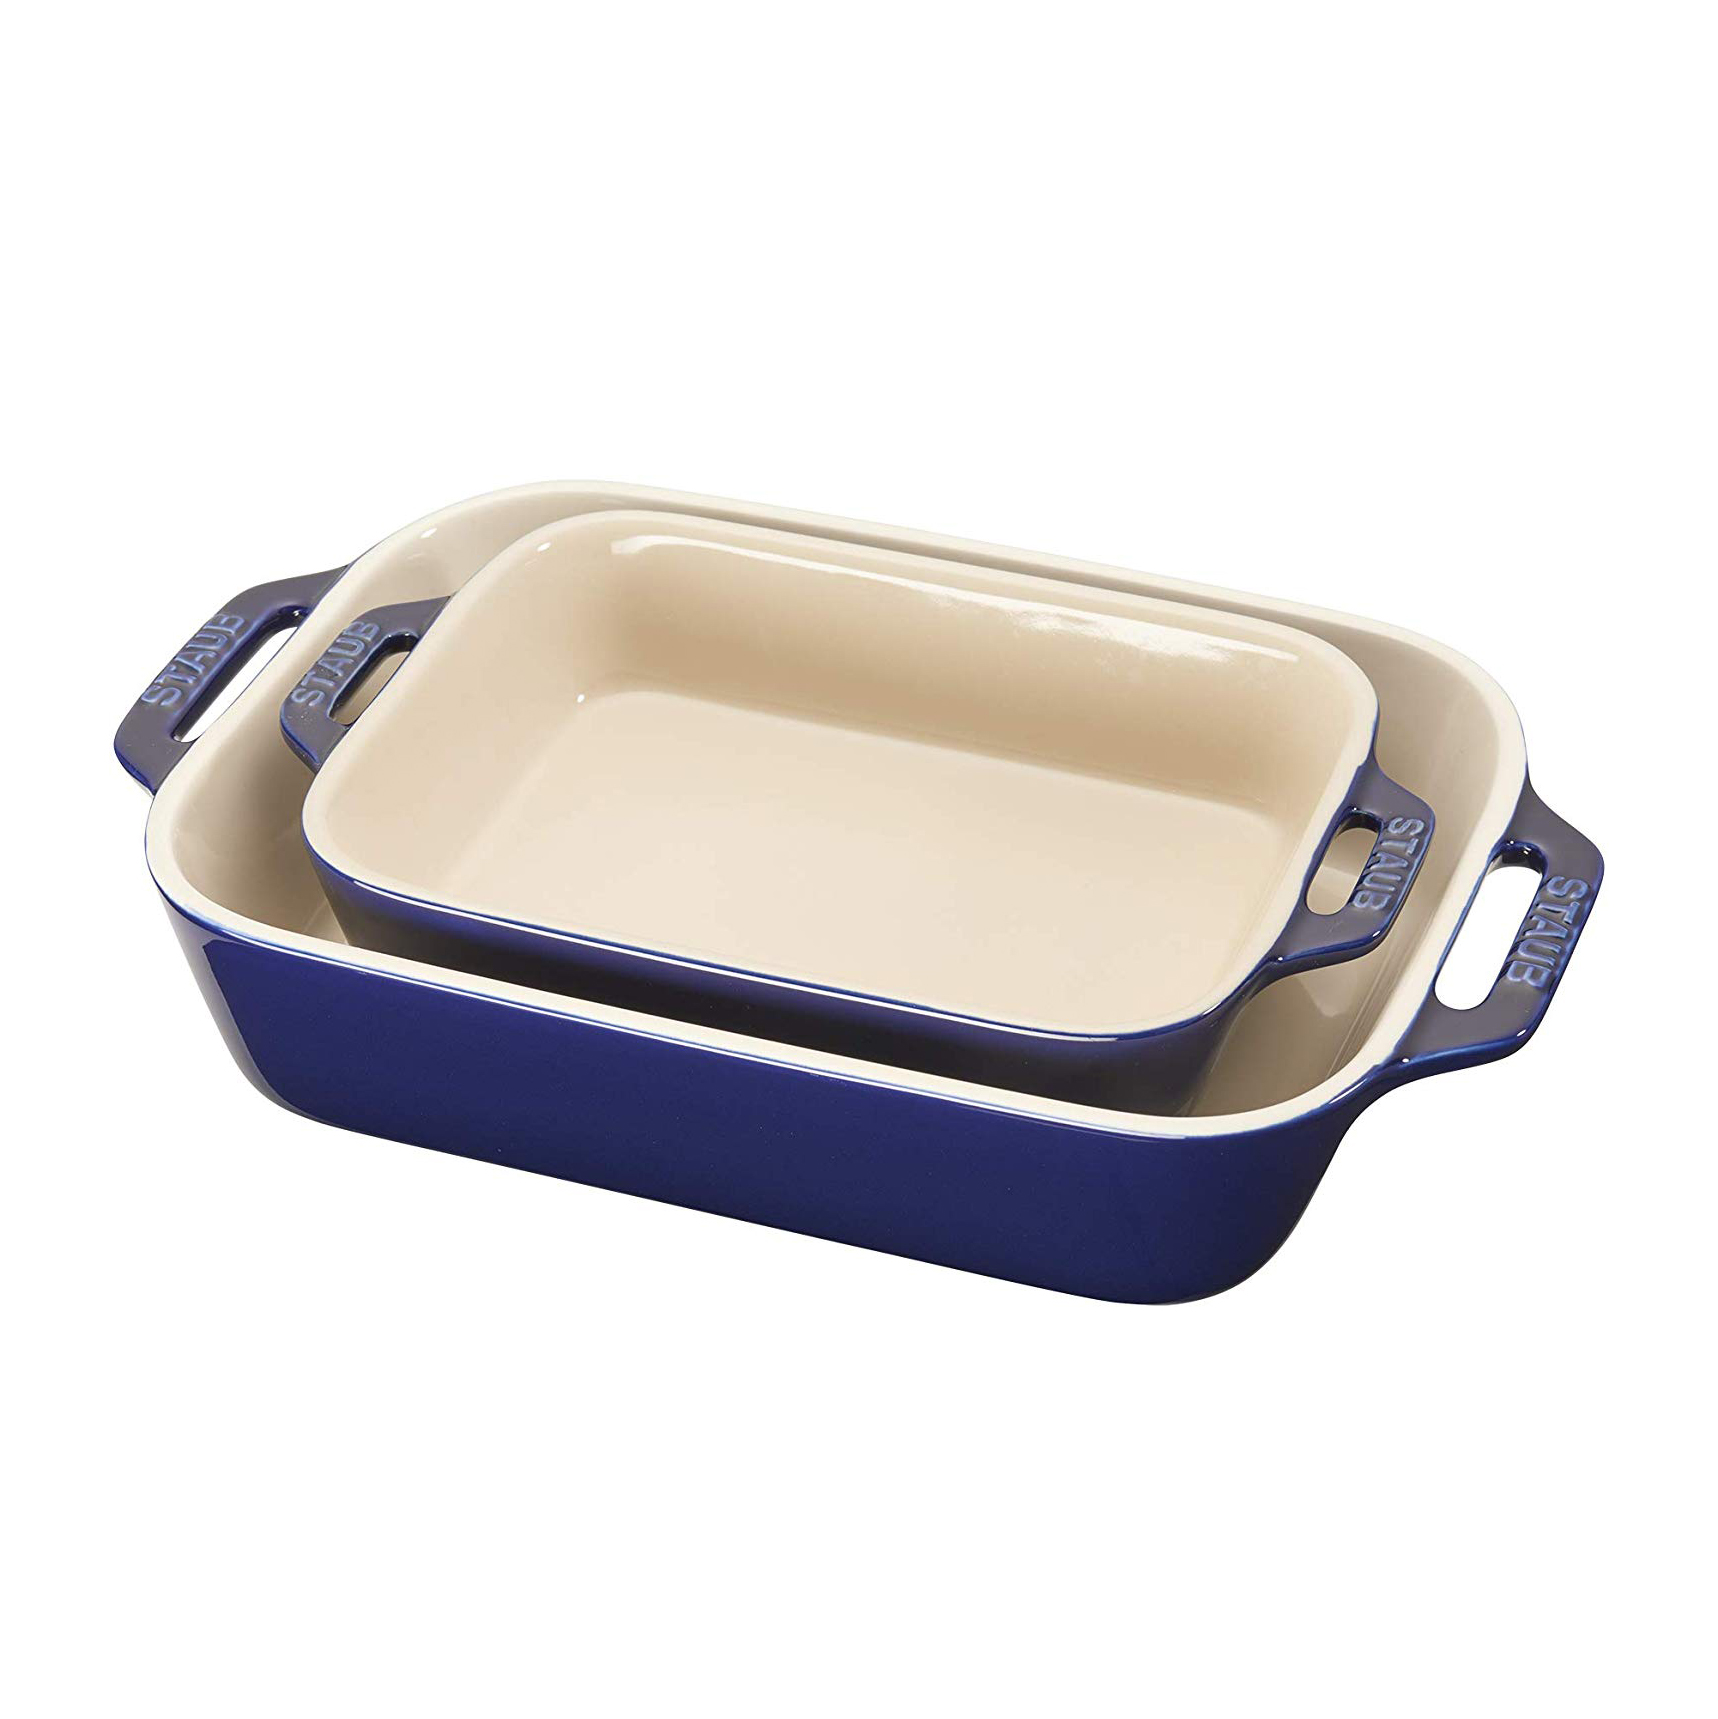 Staub 40508-628 Ceramics Rectangular Baking Dish Set